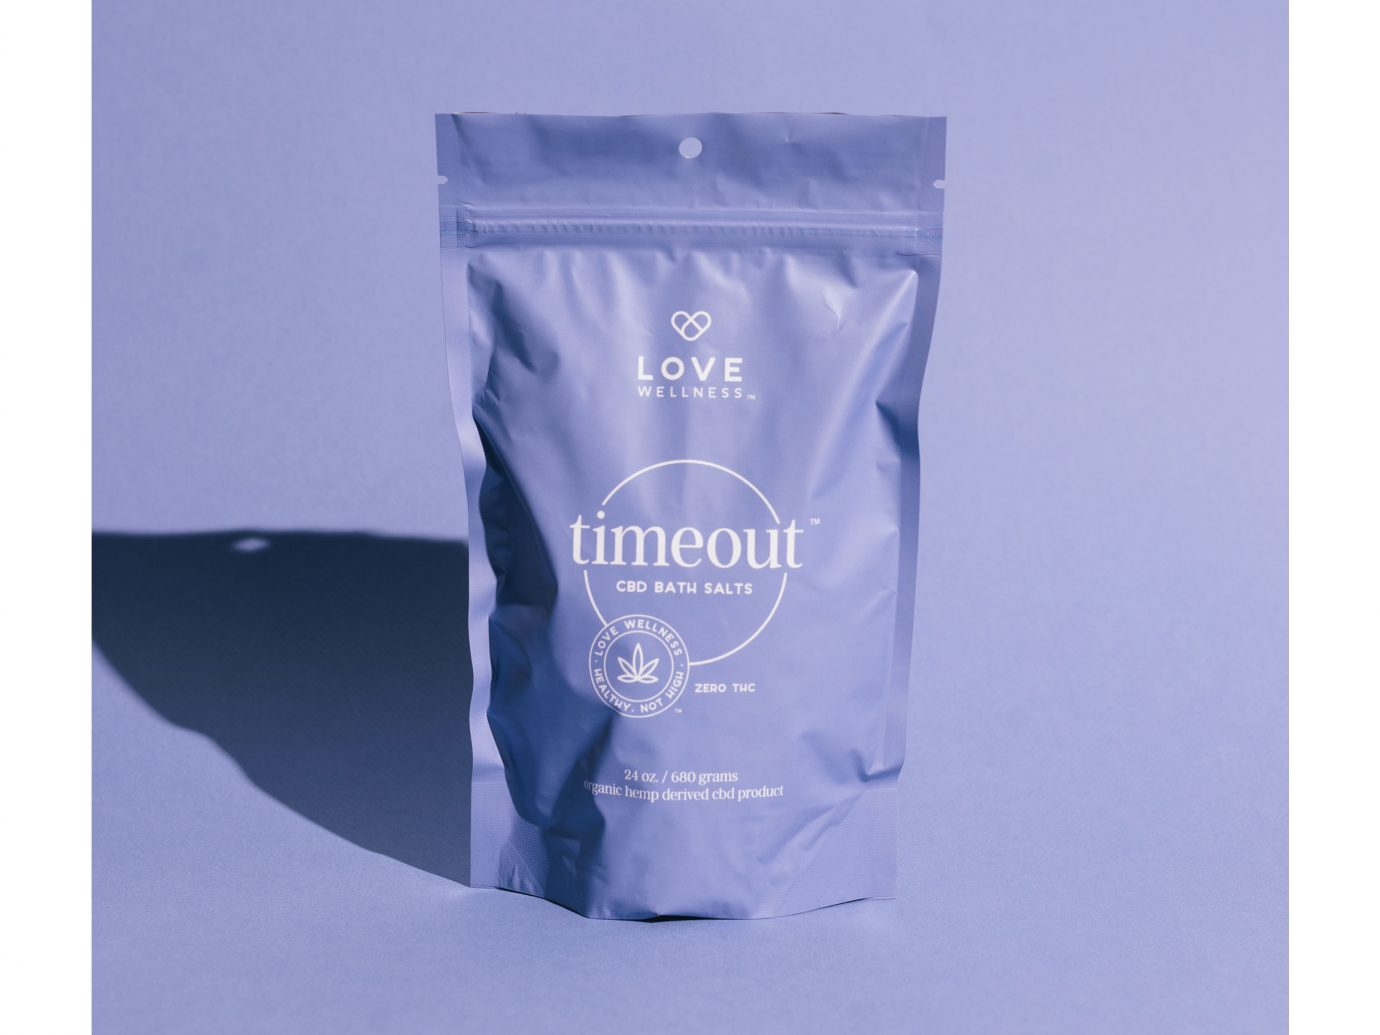 Love Wellness Timeout CBD Bath Salts